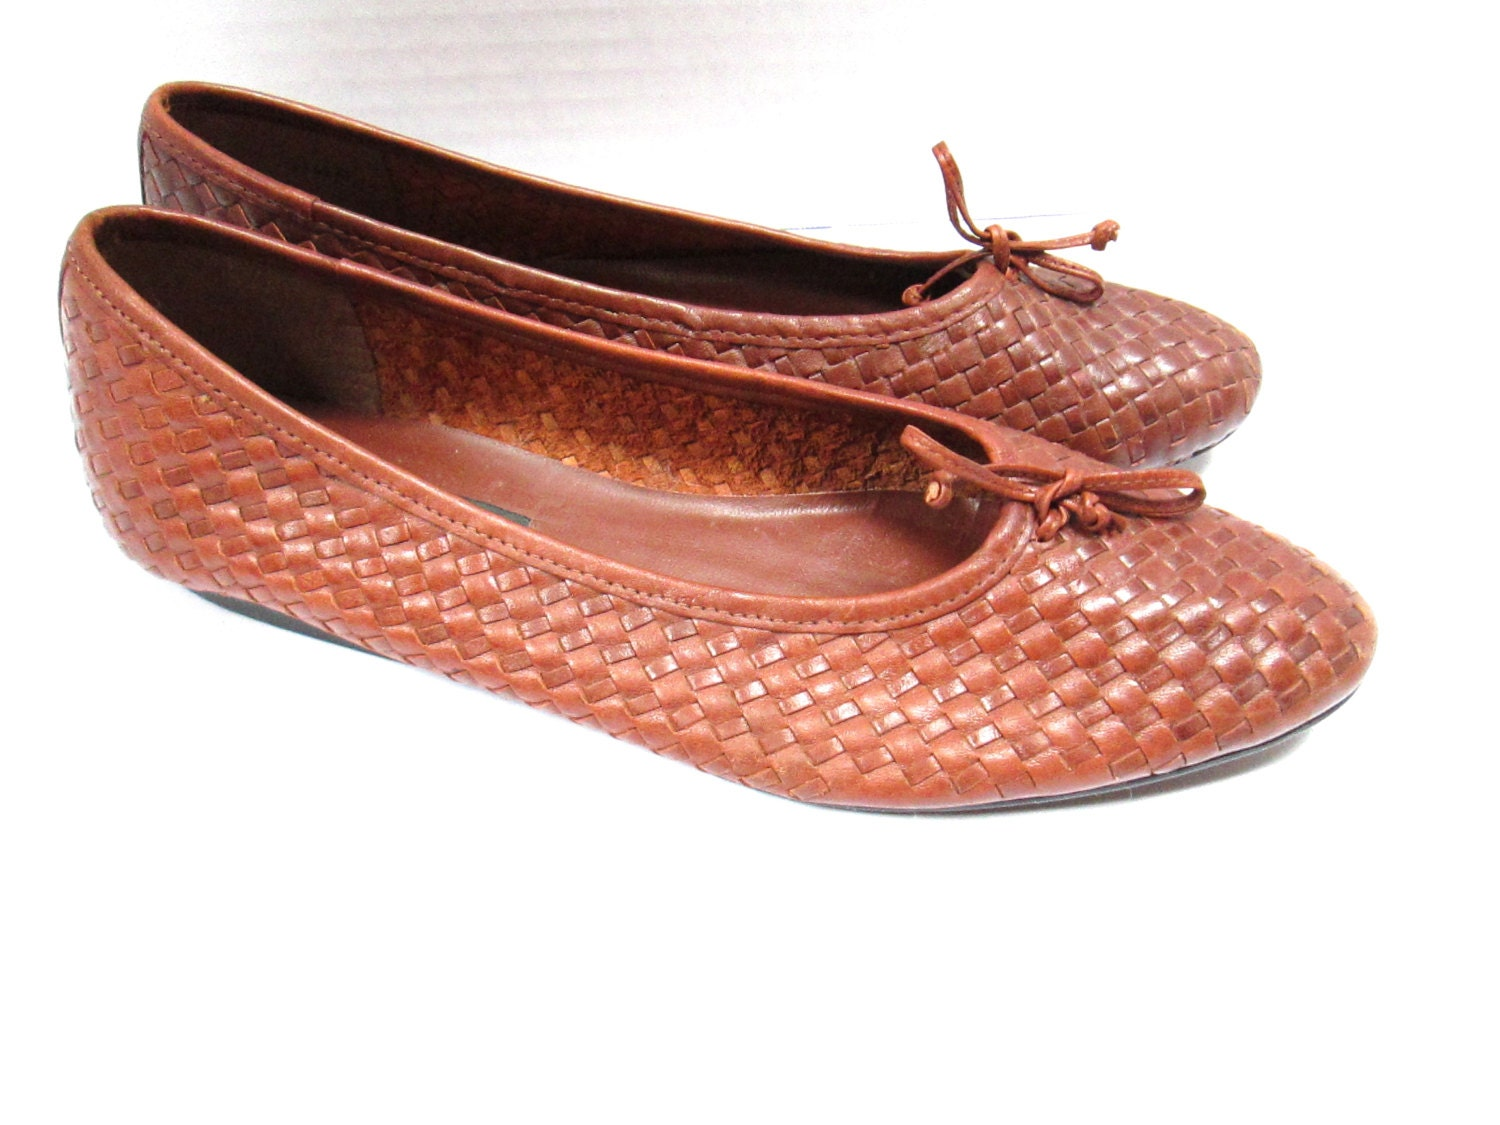 vtg 80s braided leather shoes slip on brown by